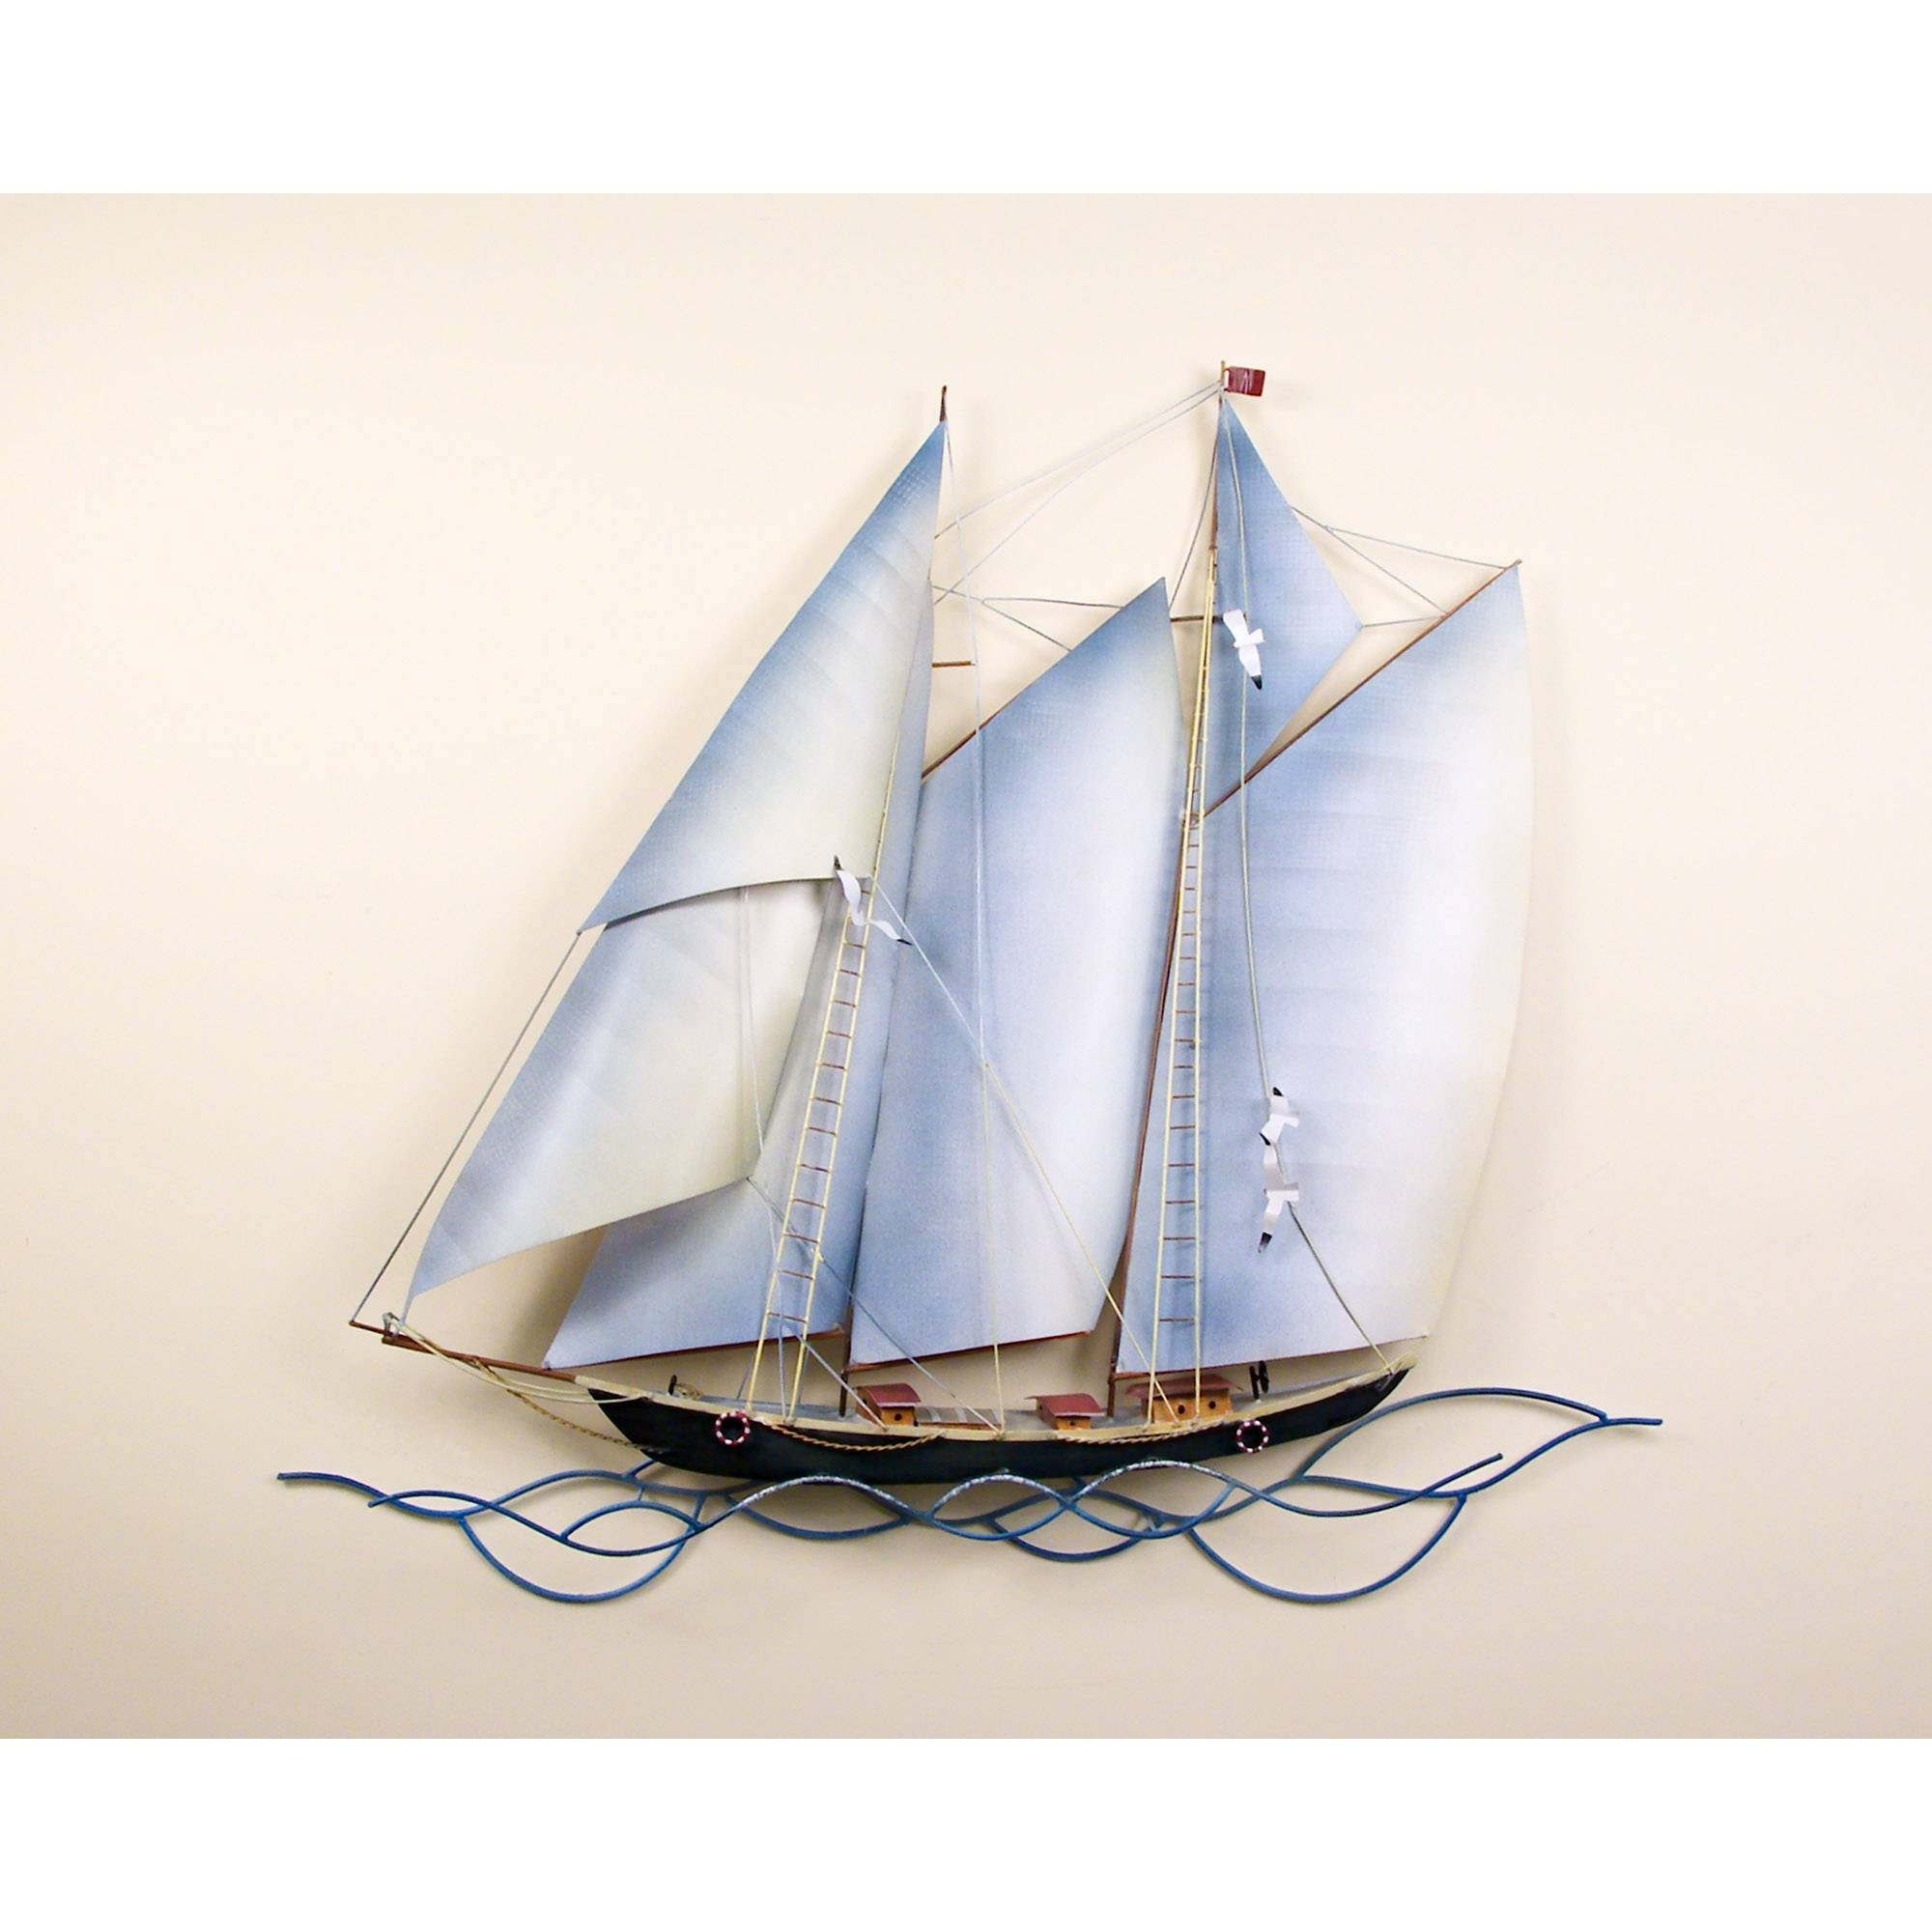 Schooner Under Sail, Single With Regard To Most Current Sailboat Metal Wall Art (View 24 of 30)